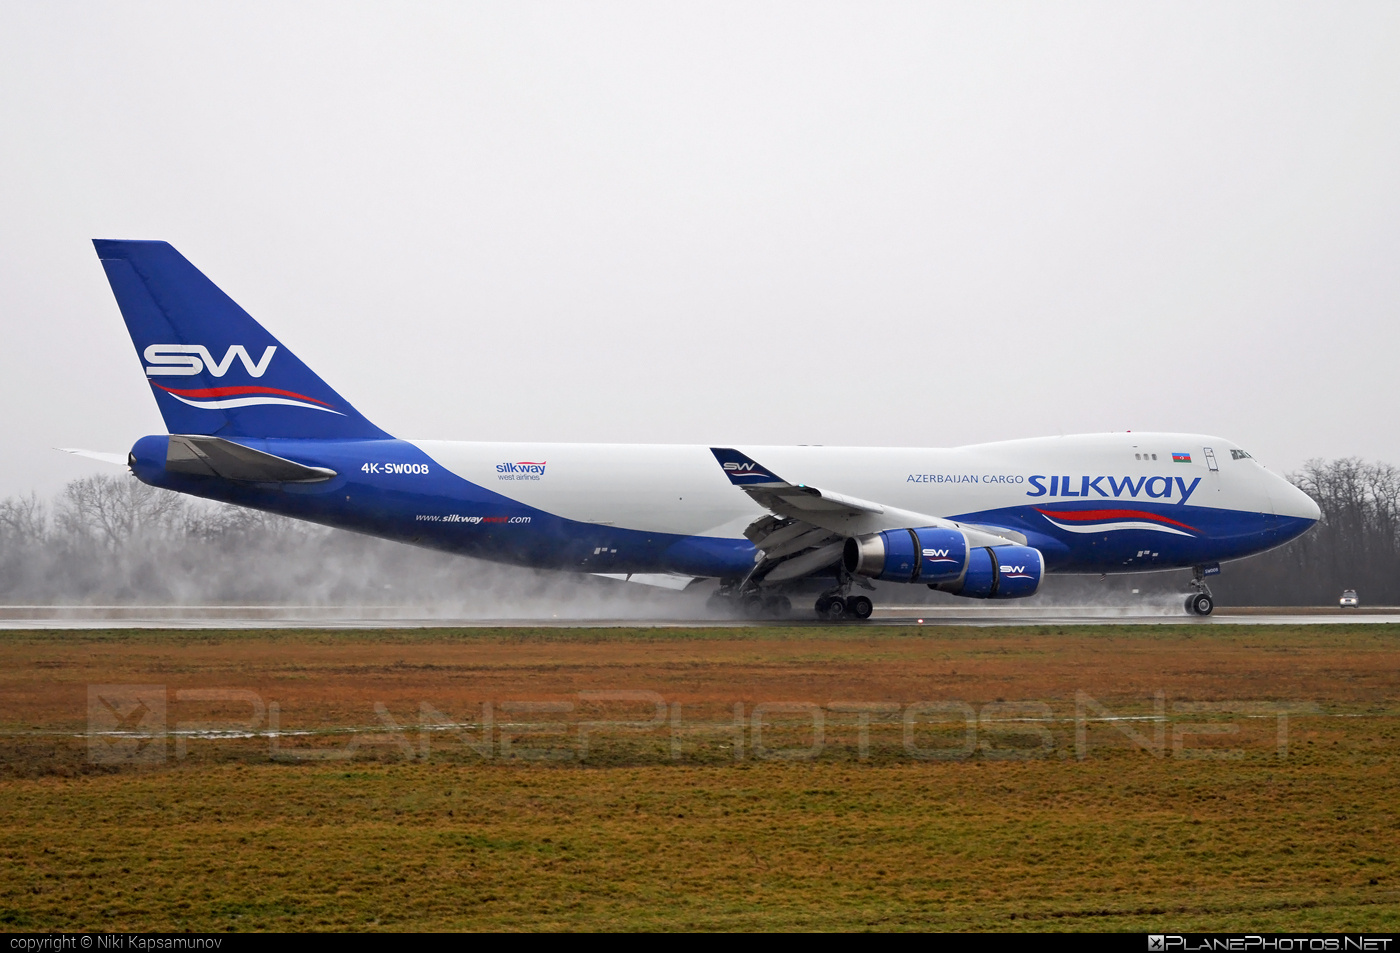 Boeing 747-400F - 4K-SW008 operated by Silk Way West Airlines #b747 #boeing #boeing747 #jumbo #silkwayairlines #silkwaywestairlines